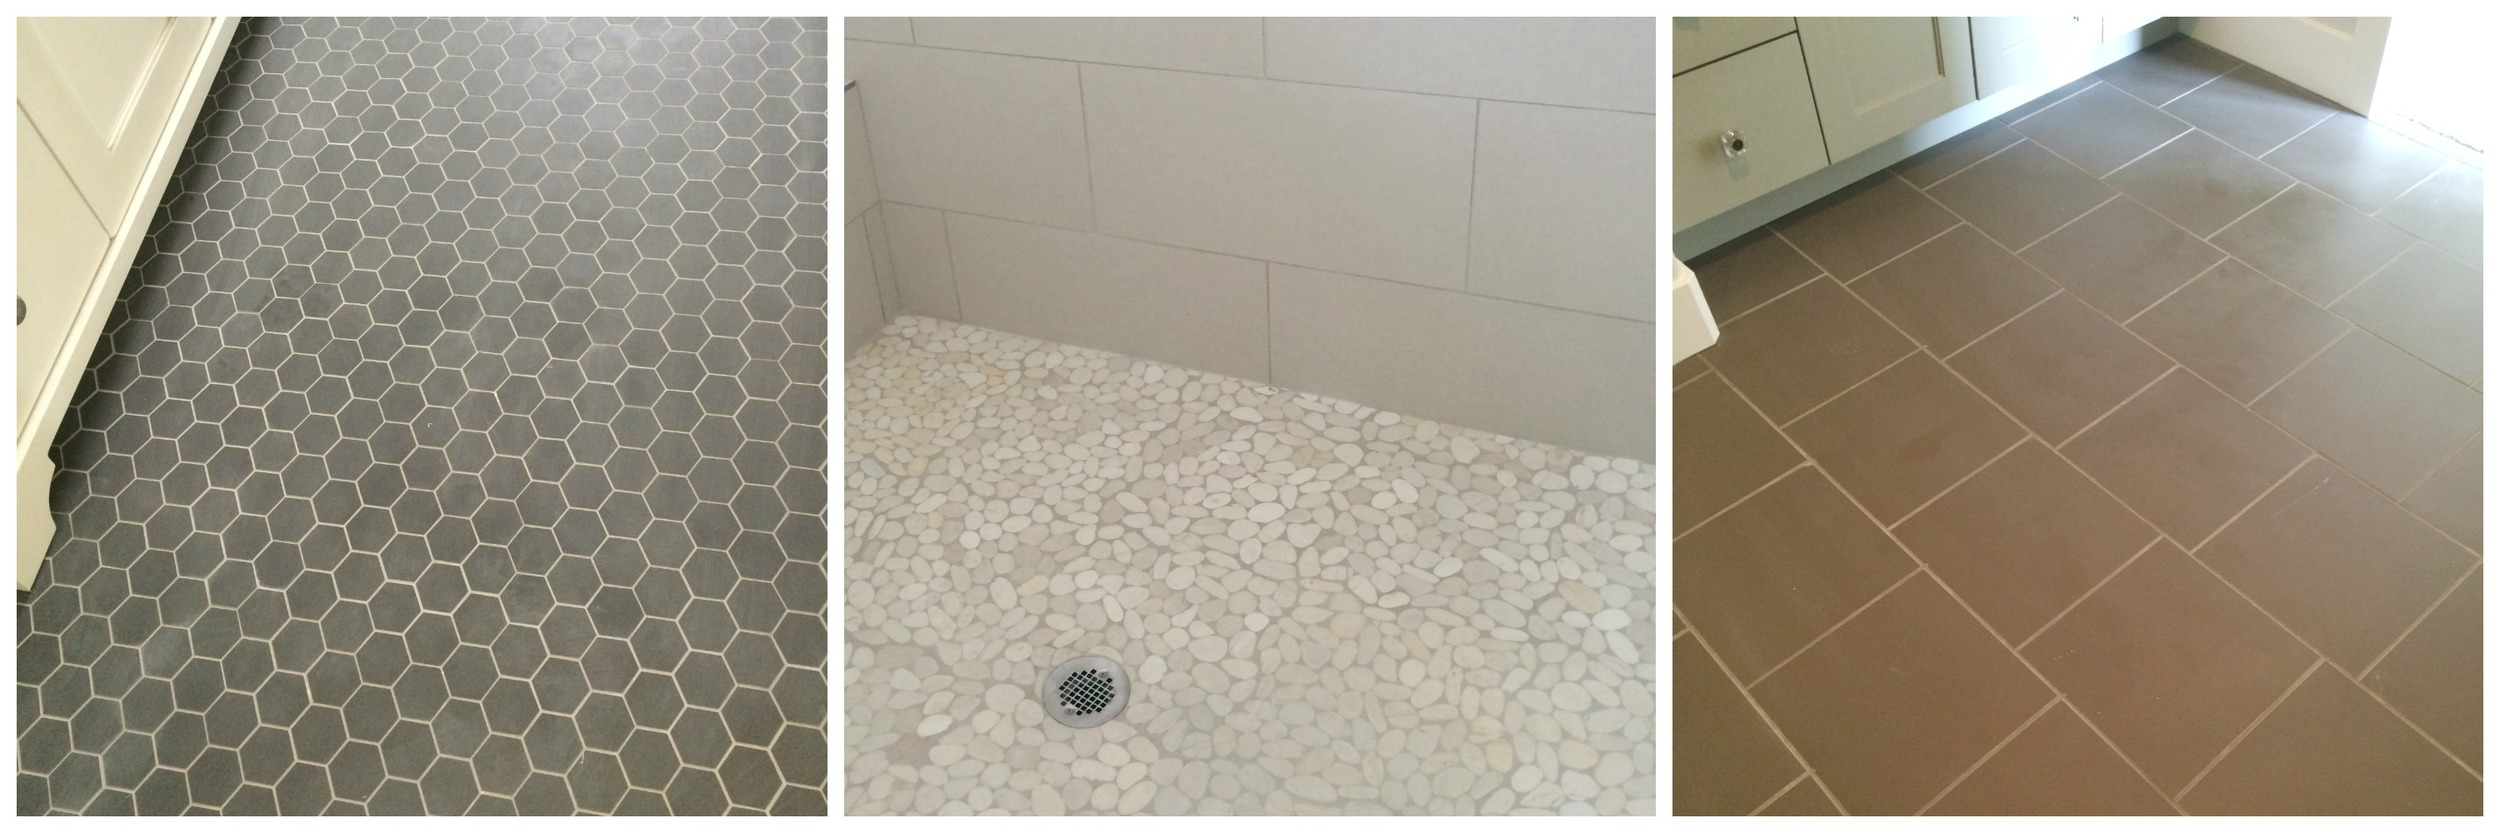 Unique tile in various colors and styles is installed throughout the home, yet each room must work together for a cohesive look.